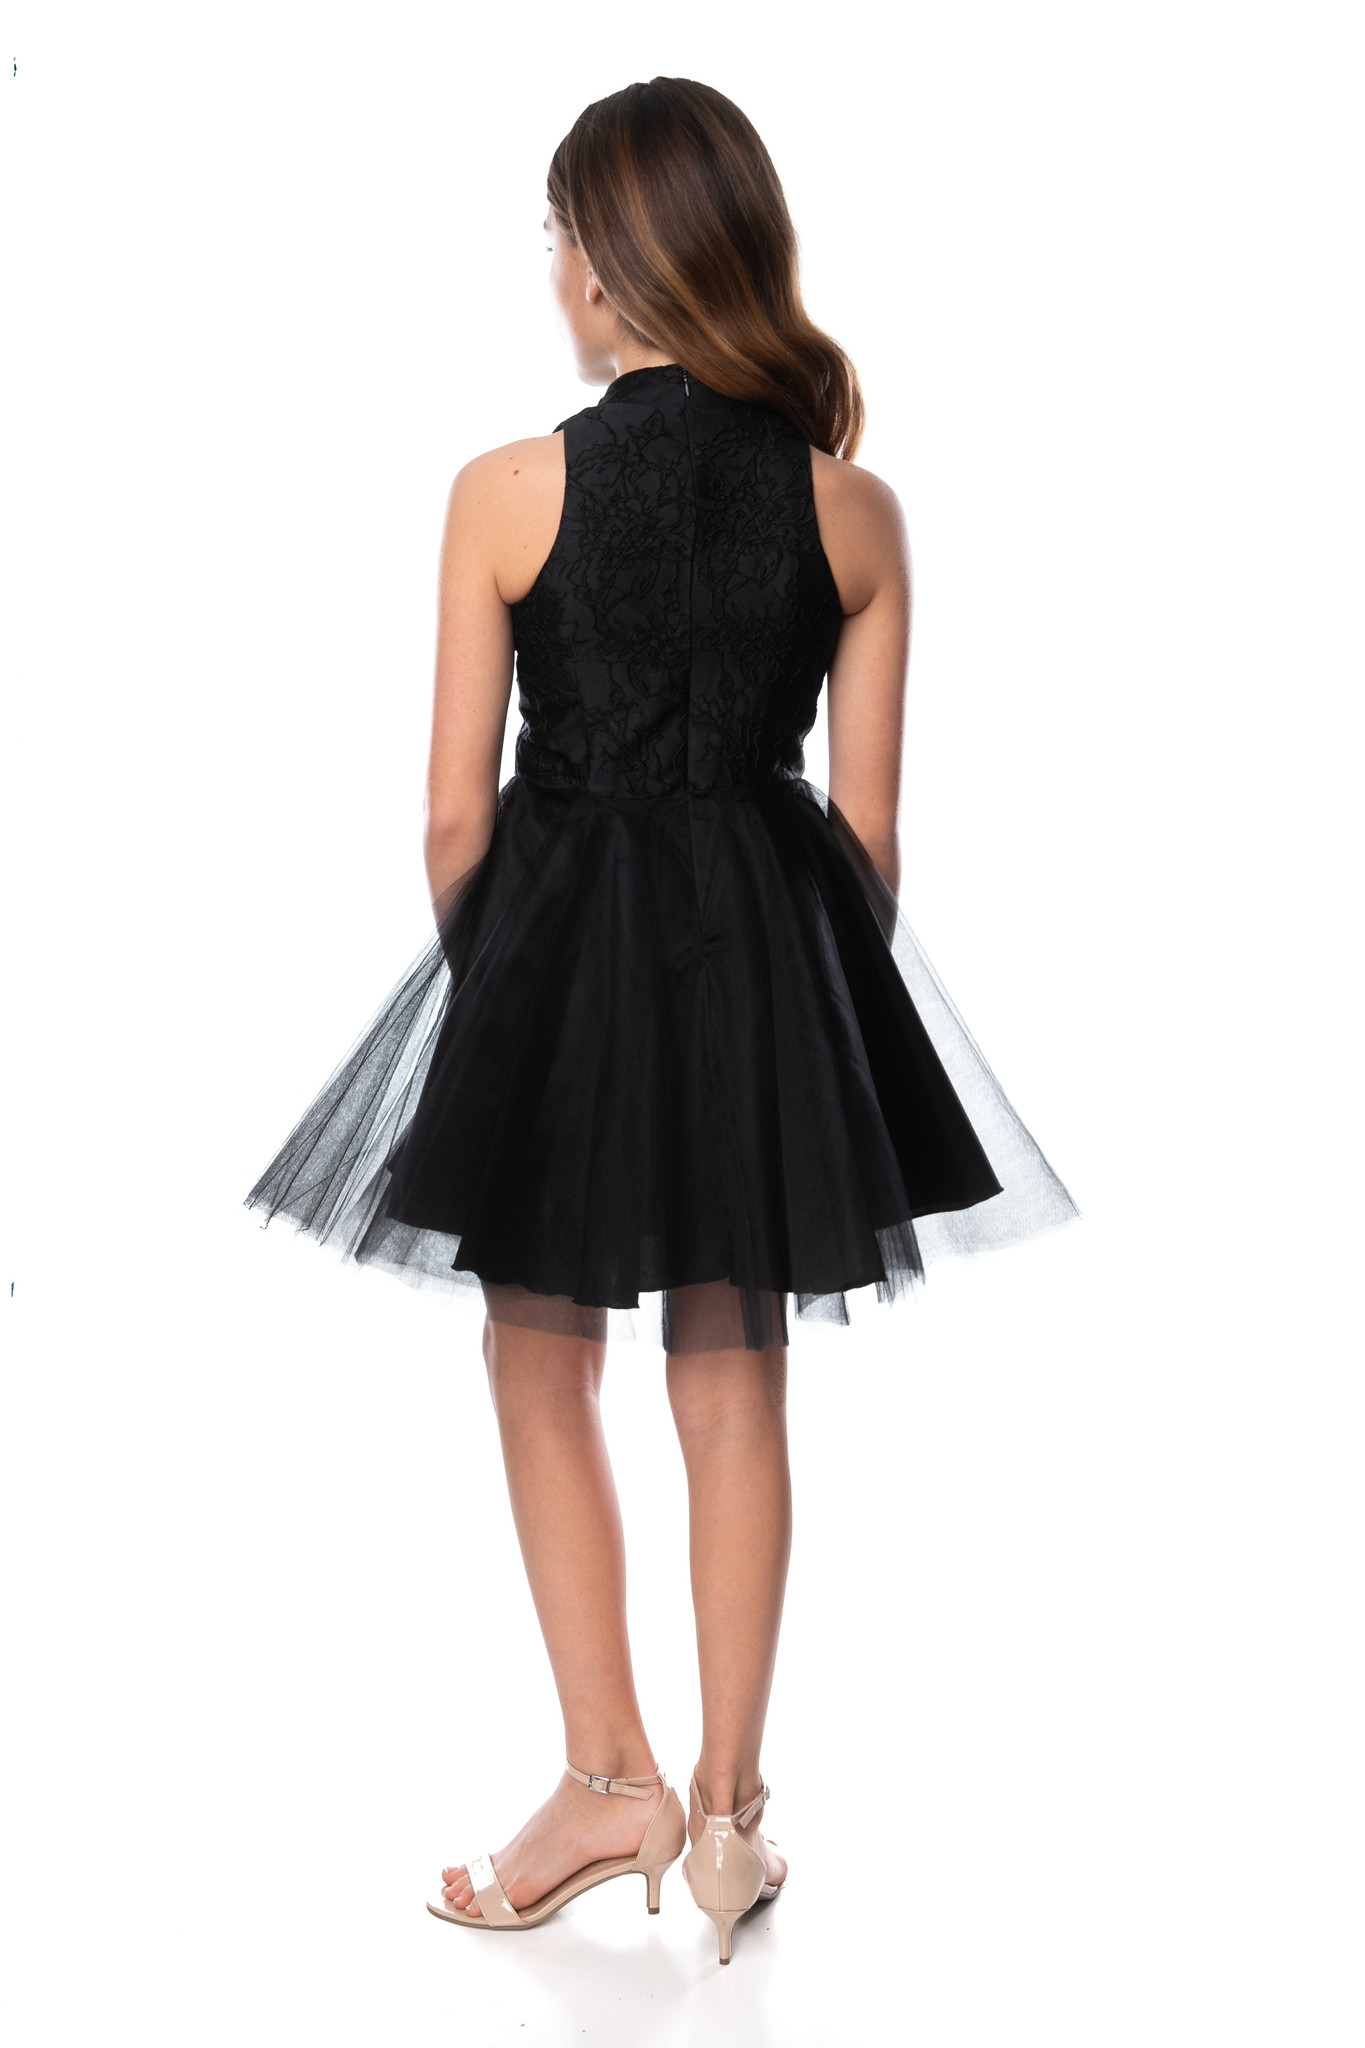 Black Floral Choker Party Dress in Longer Length back.